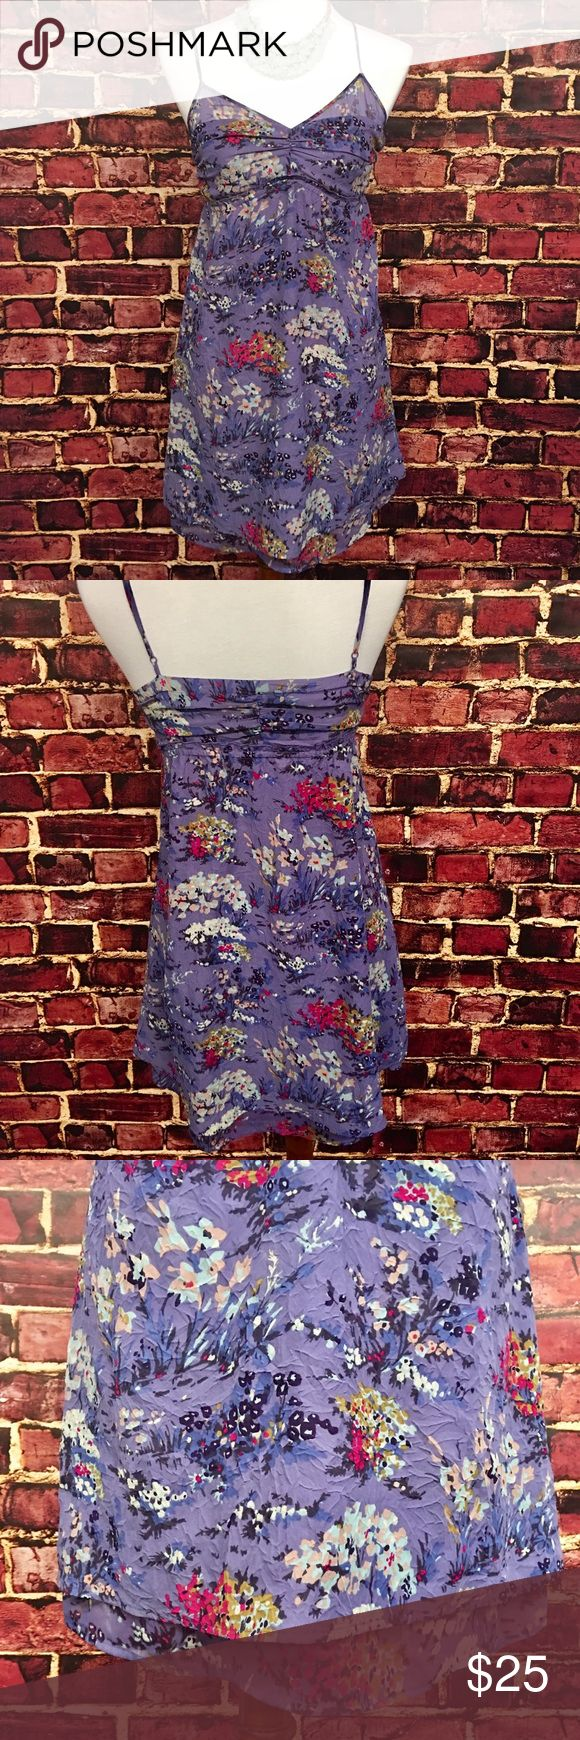 American Eagle Floral Sundress Beautiful American Eagle Outfitters spring floral sundress! Fit and flare style with an empire waist. Adjustable straps. Multi layered hem. In perfect preowned condition. Smoke and pet free home. American Eagle Outfitters Dresses Mini